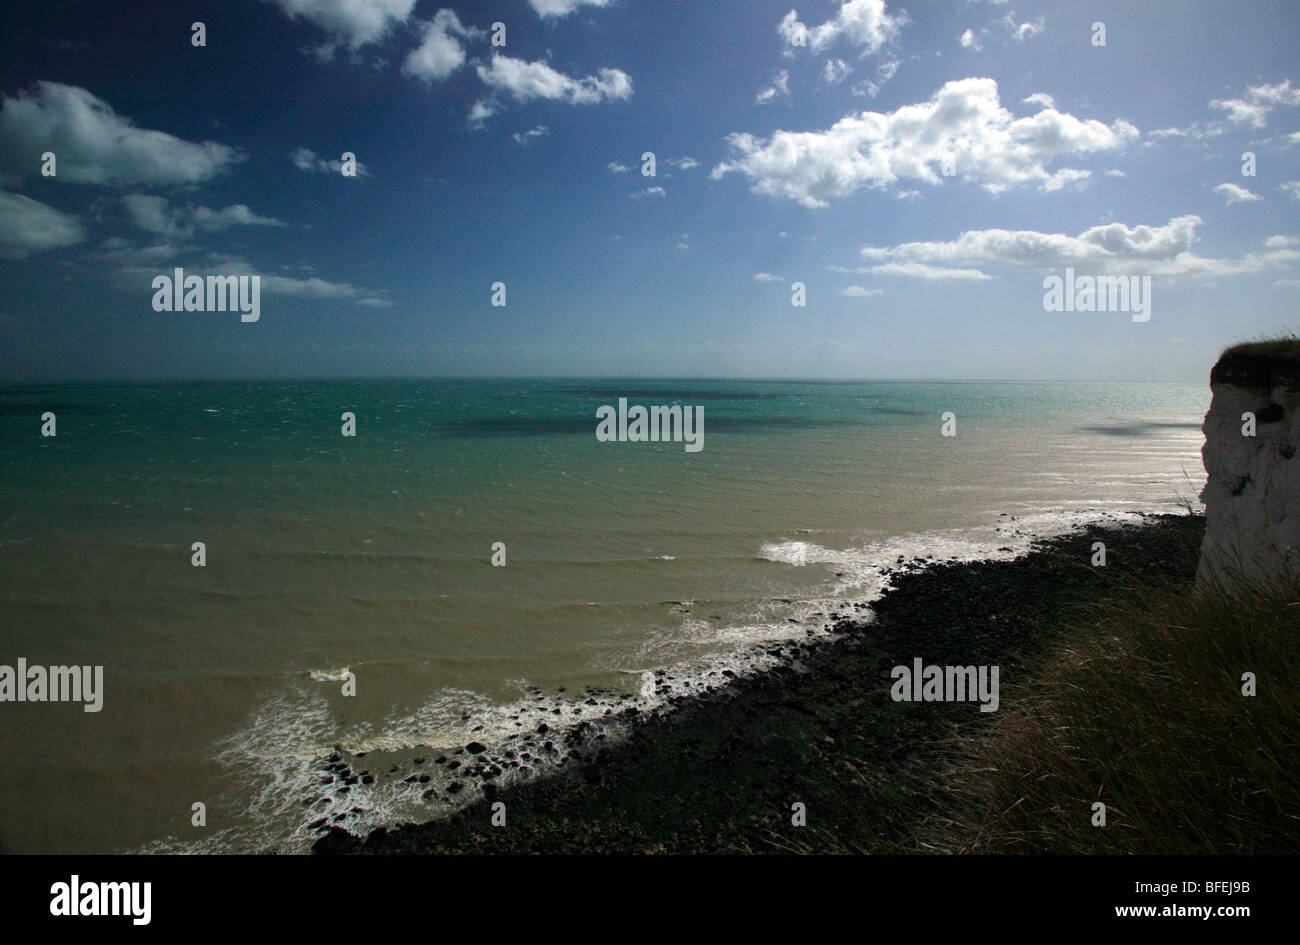 Seascape of the English Channel,  taken from the Saxon Shore Way between Kingsdown and St Margrets Bay, Kent. - Stock Image